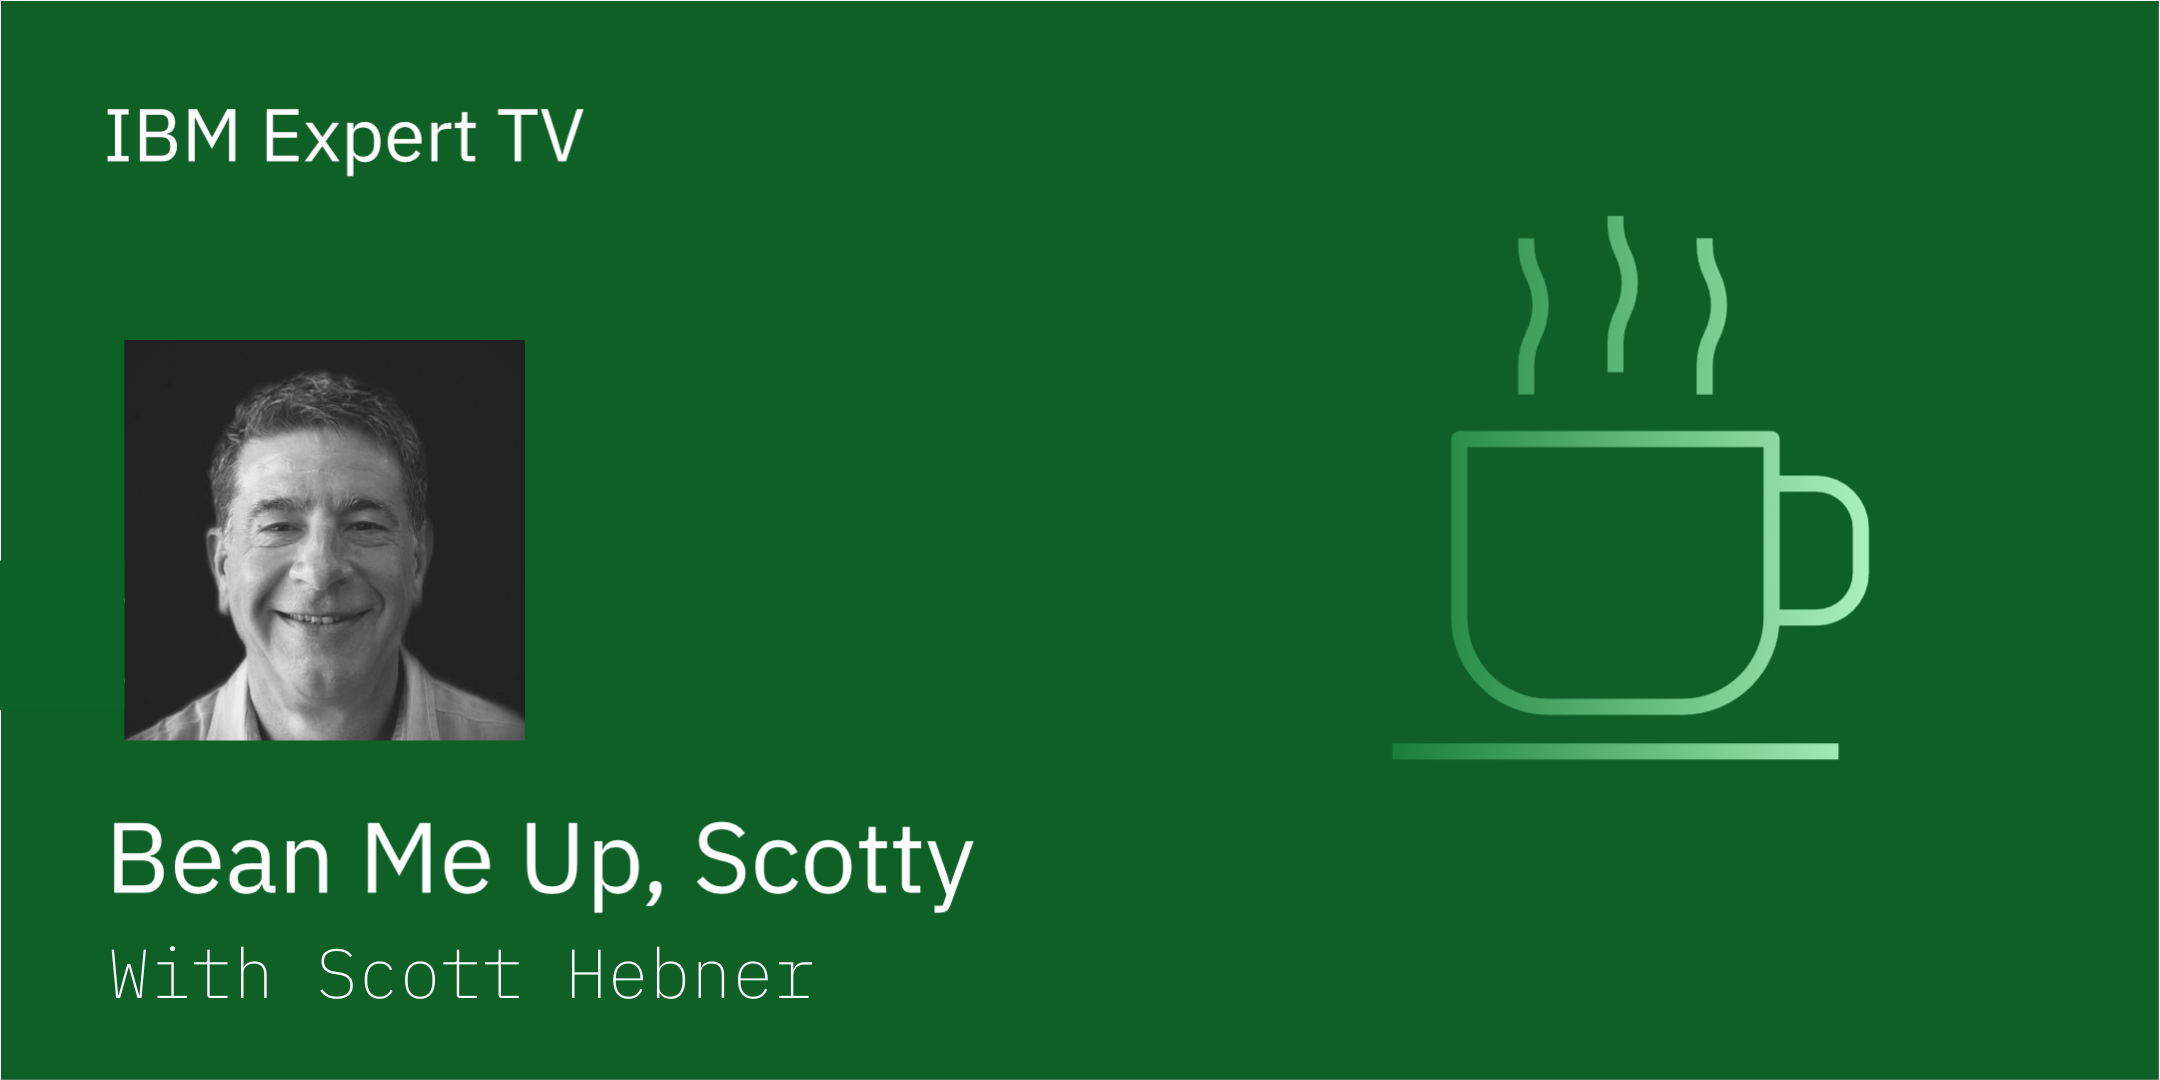 New IBM Expert TV  Show Banner - Beam Me Up, Scotty with Scott Hebner with headshot of Scott Hebner and a graphic of a coffee cup